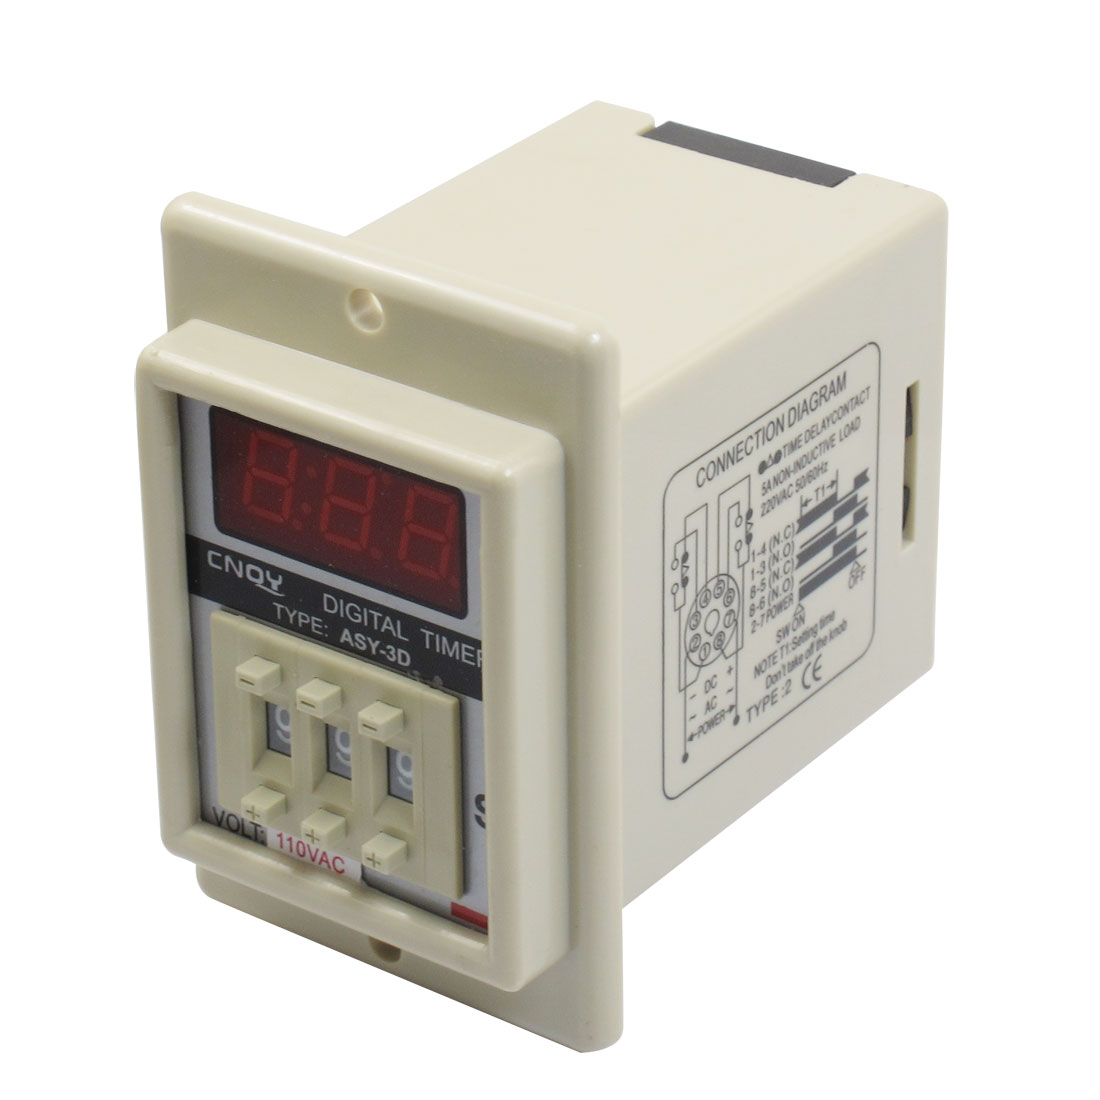 Panel Mount 1-999 Second White Digital Timer Time Delay Relay AC 110V ASY-3D